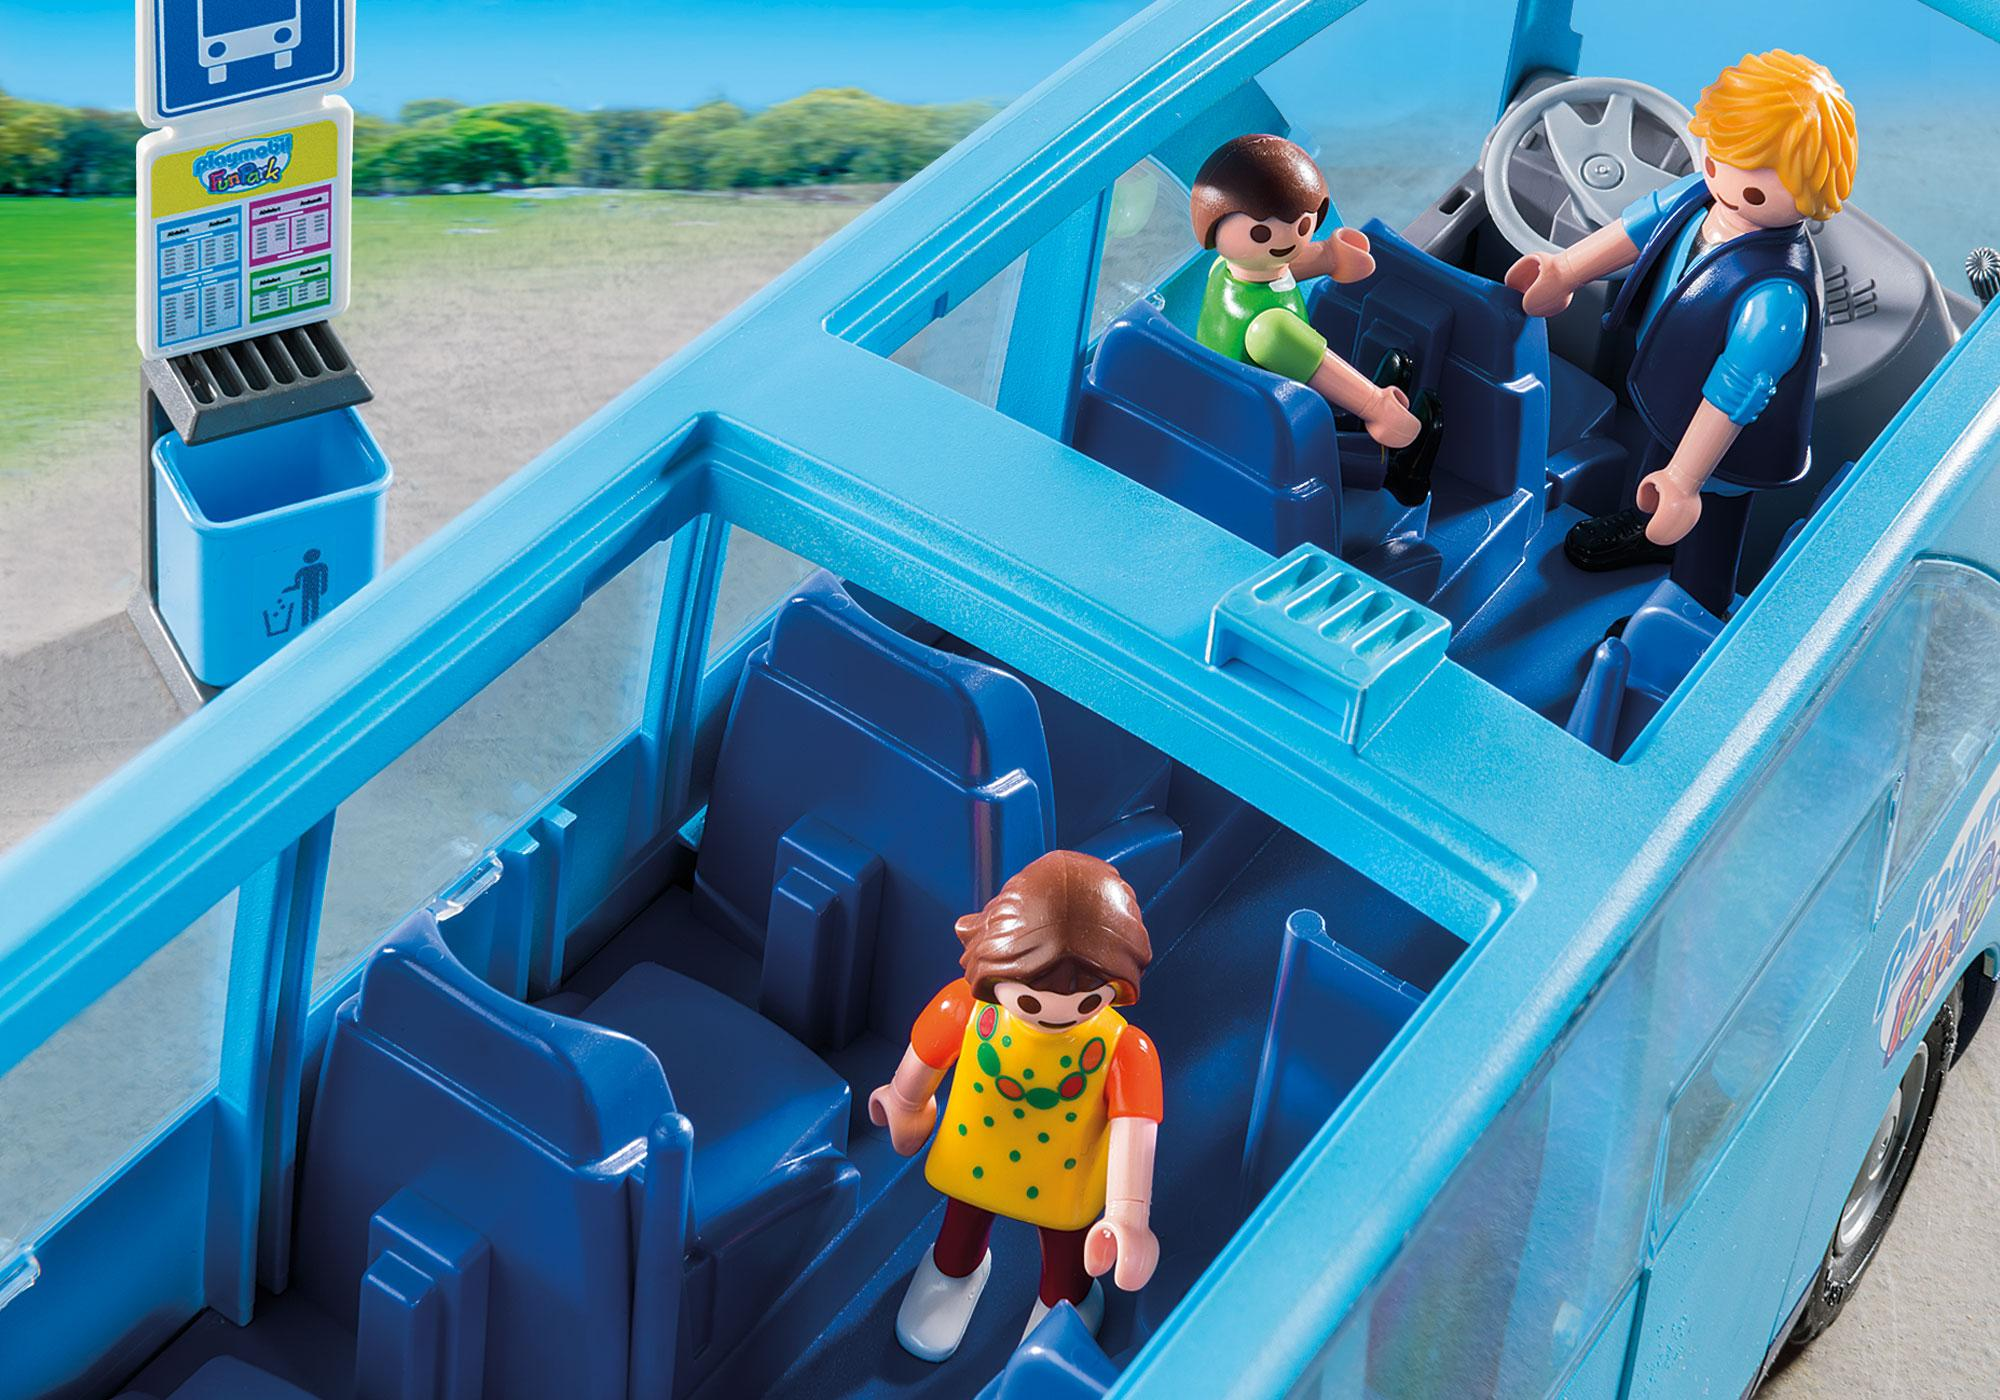 http://media.playmobil.com/i/playmobil/9117_product_extra2/PLAYMOBIL-FunPark Bus